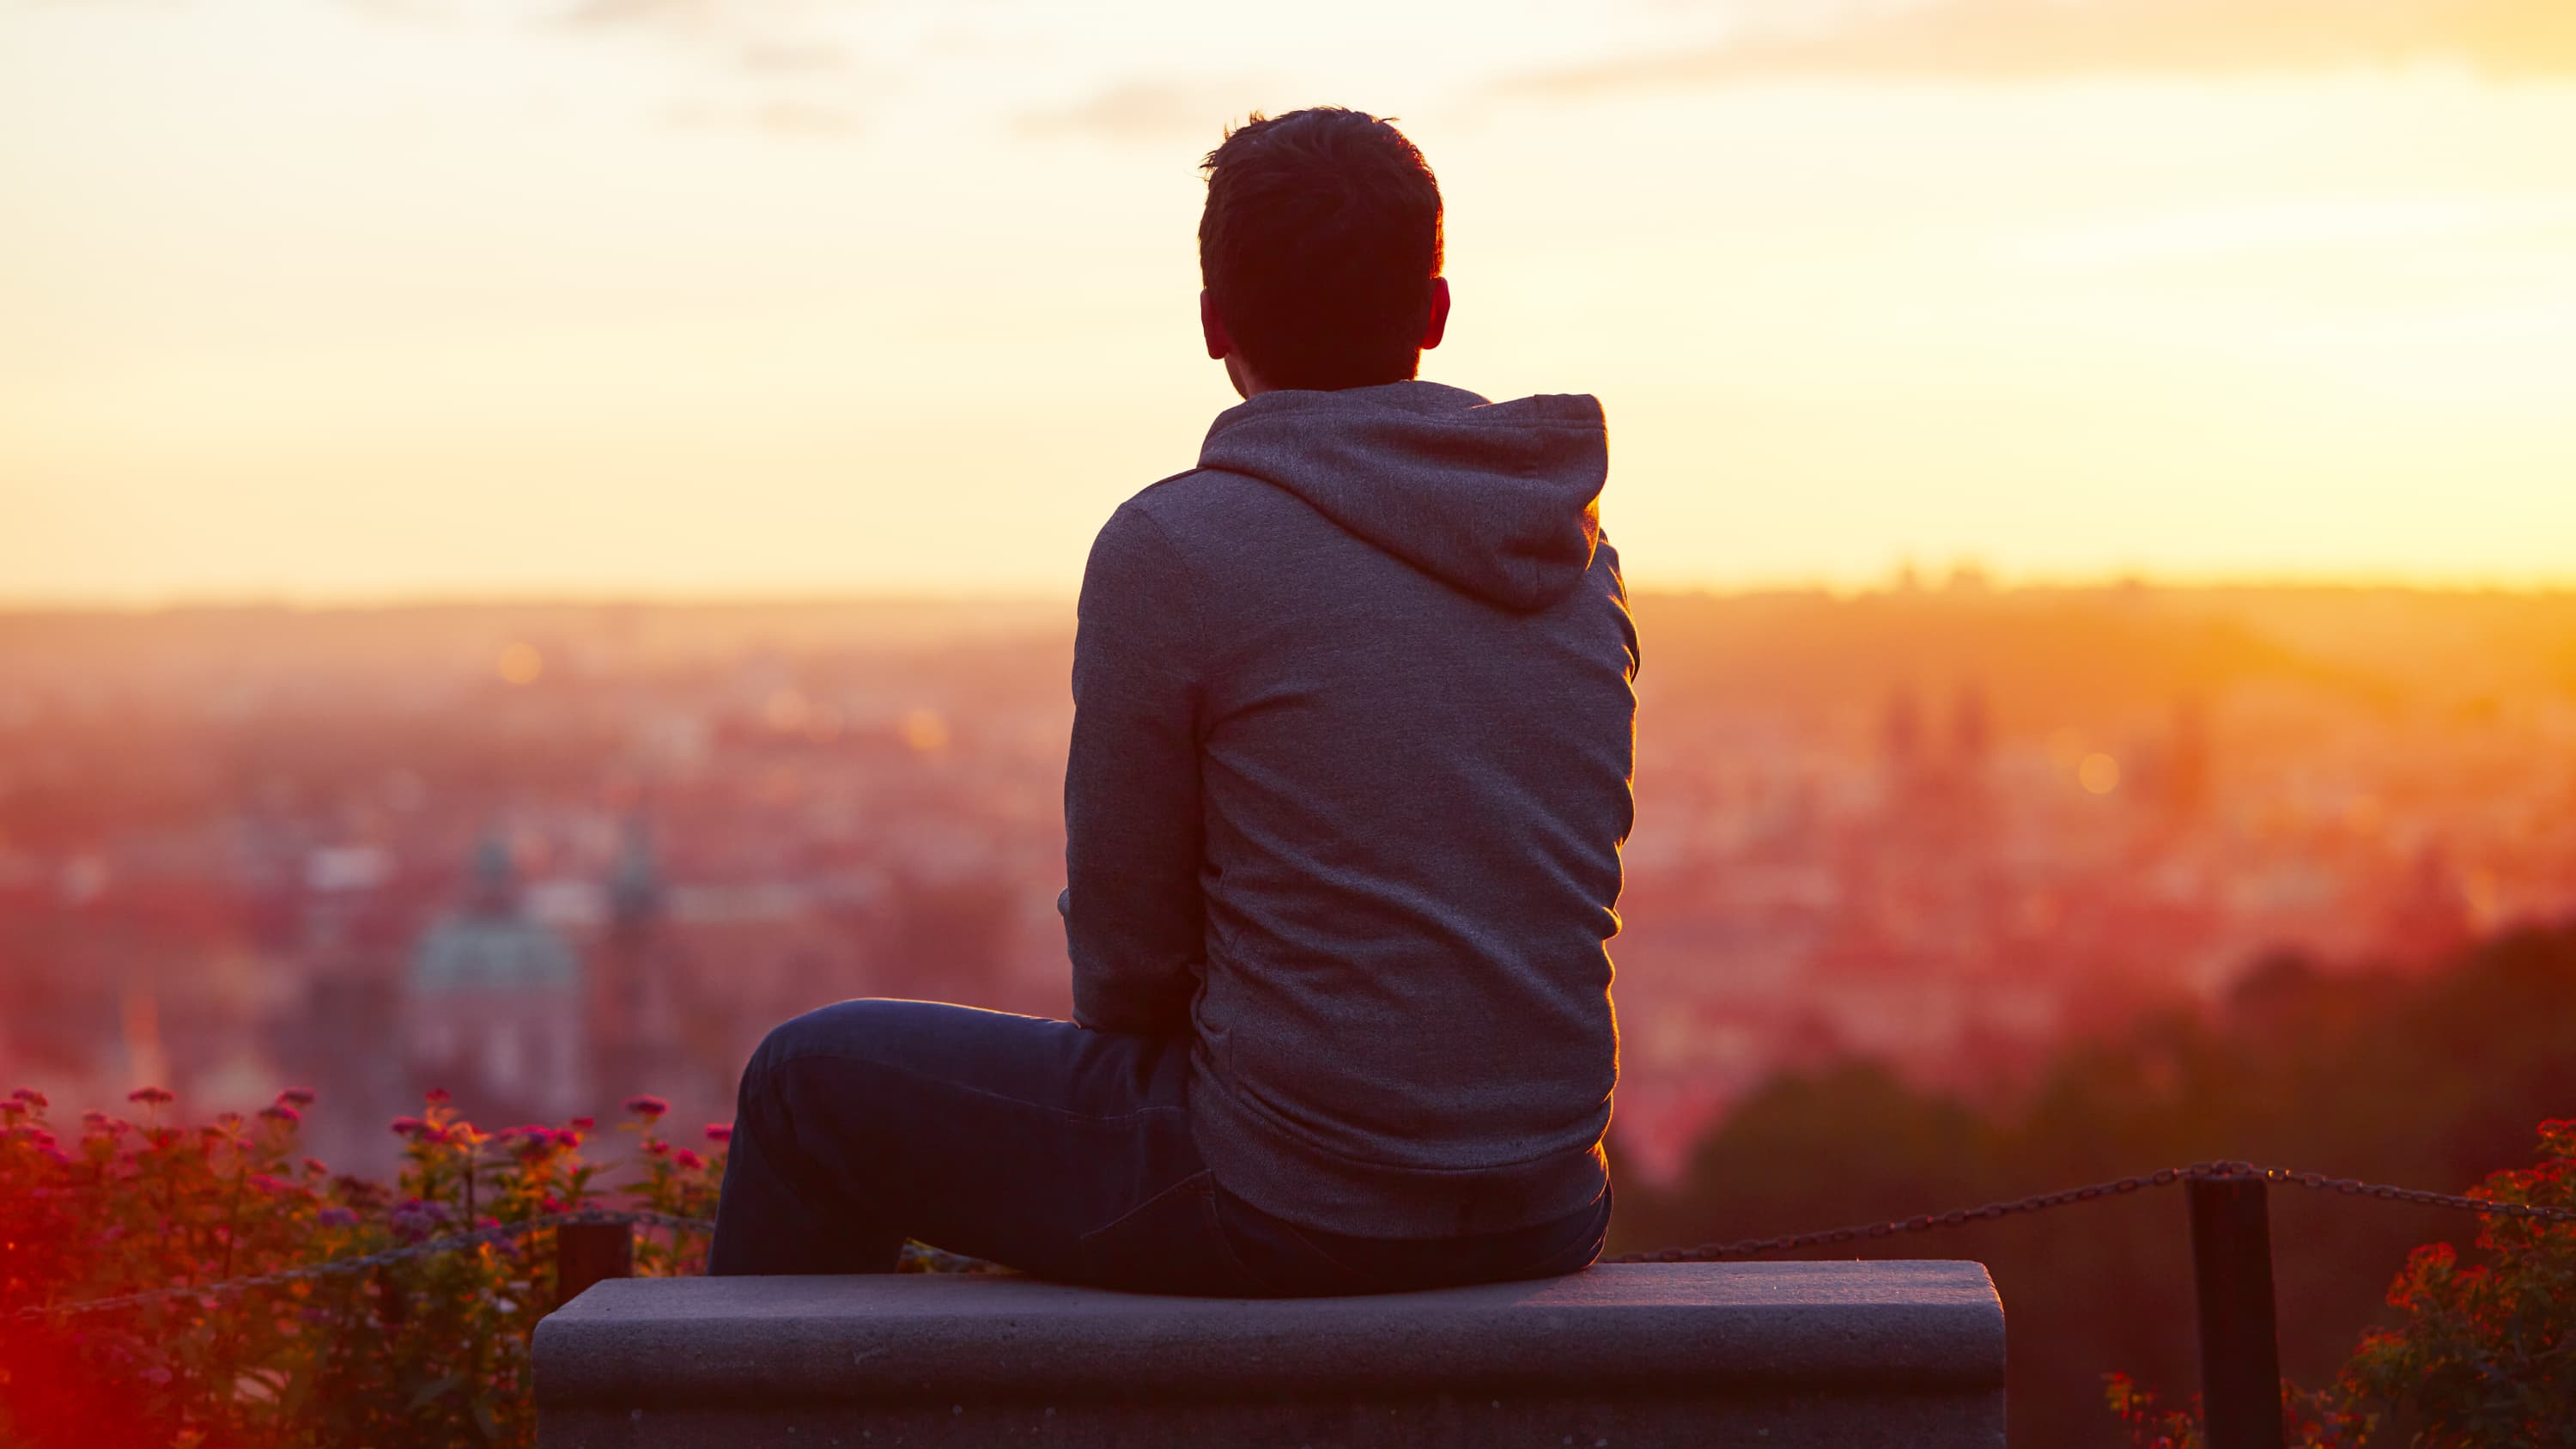 young man sitting on a bench looking out over a city, worried and stress about COVID-19